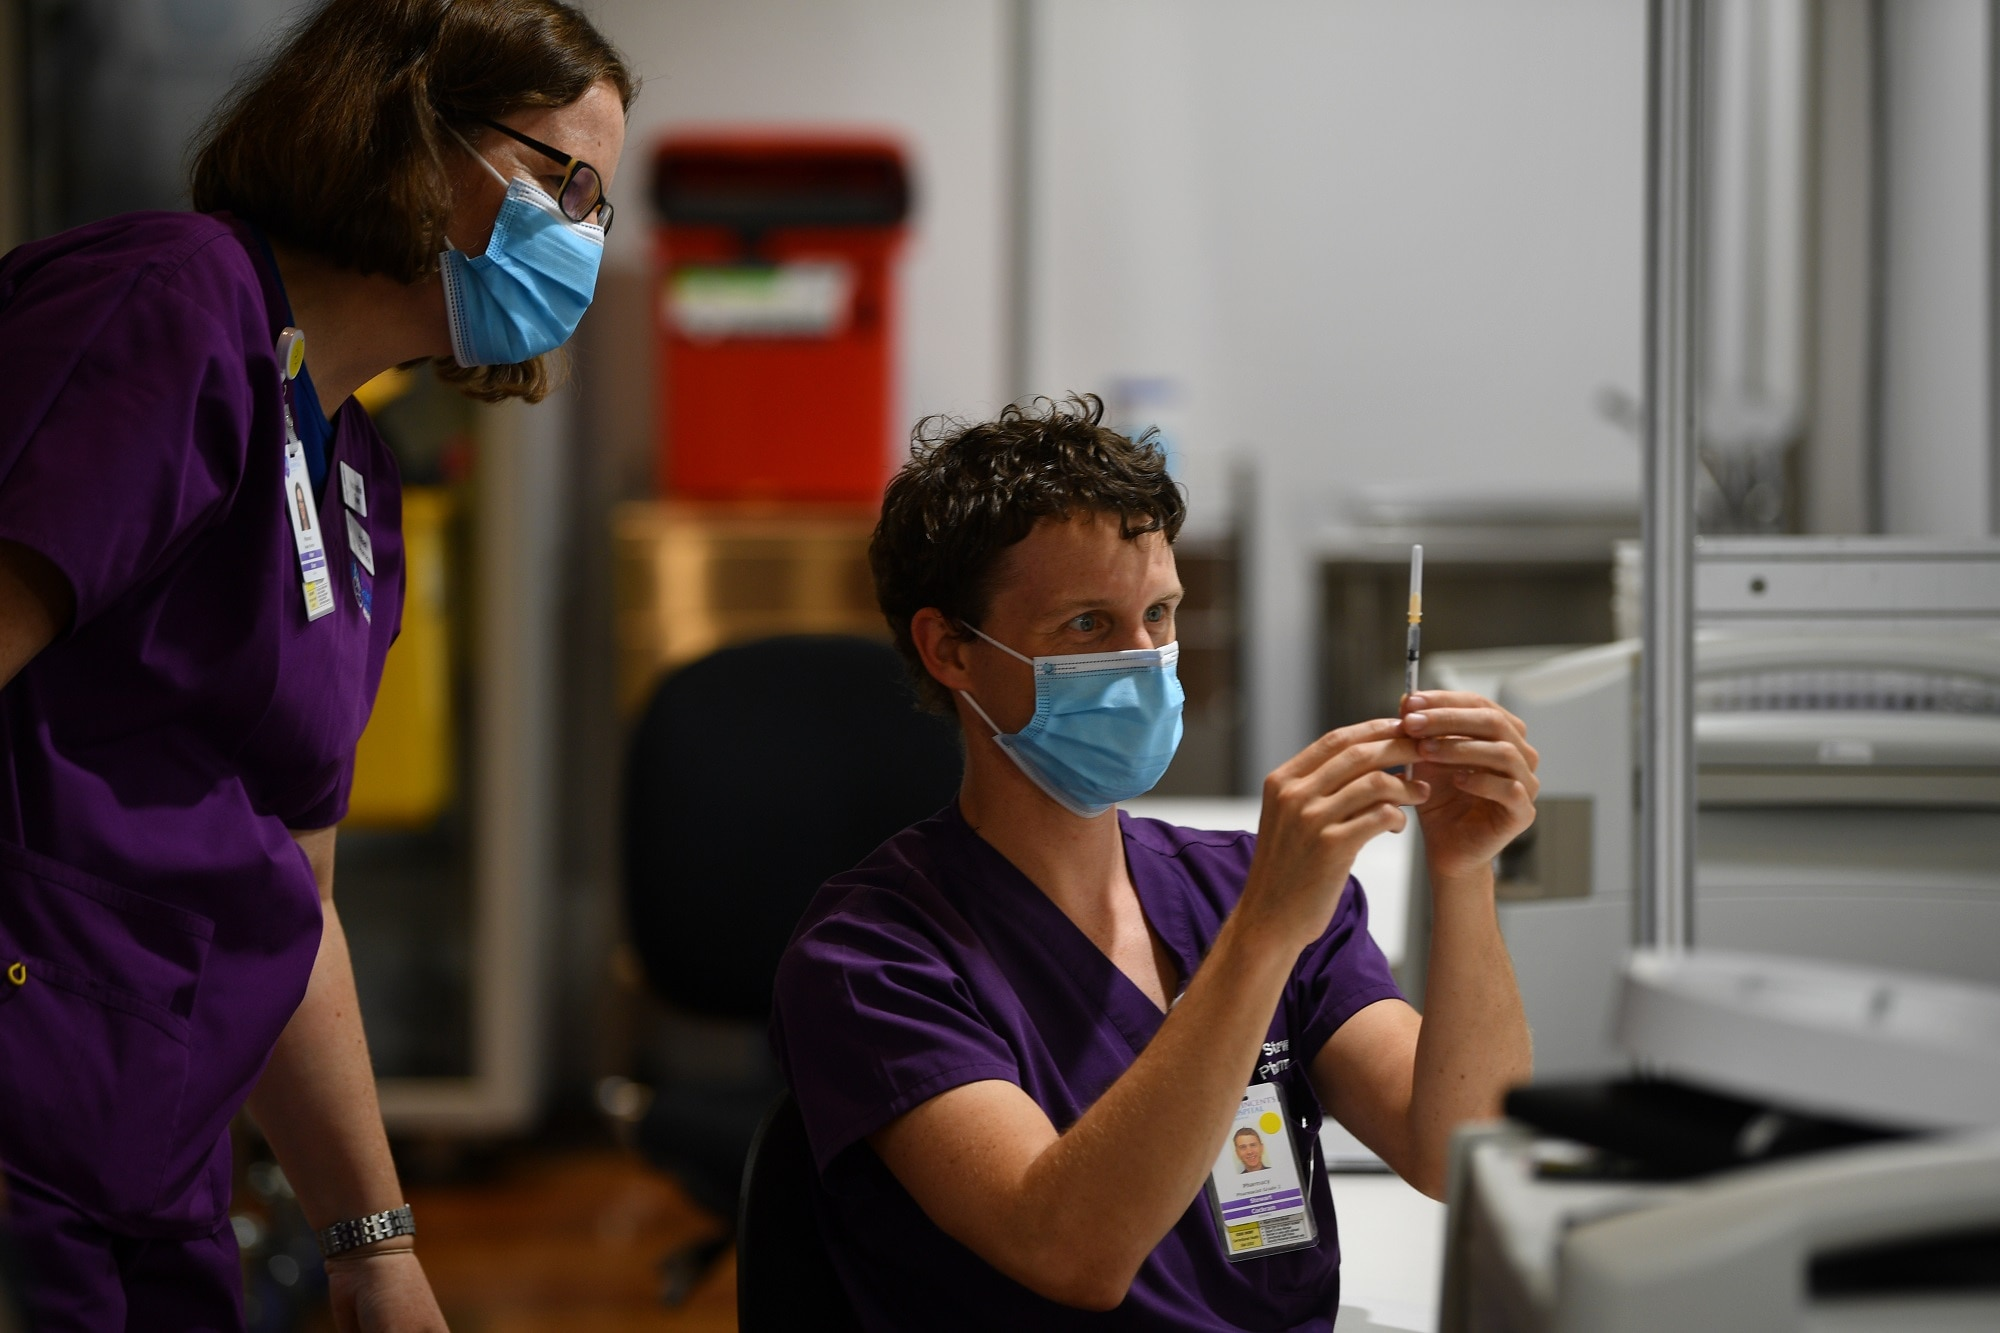 A healthcare worker is seen handling an AstraZeneca Covid-19 vaccination inside a vaccination centre.